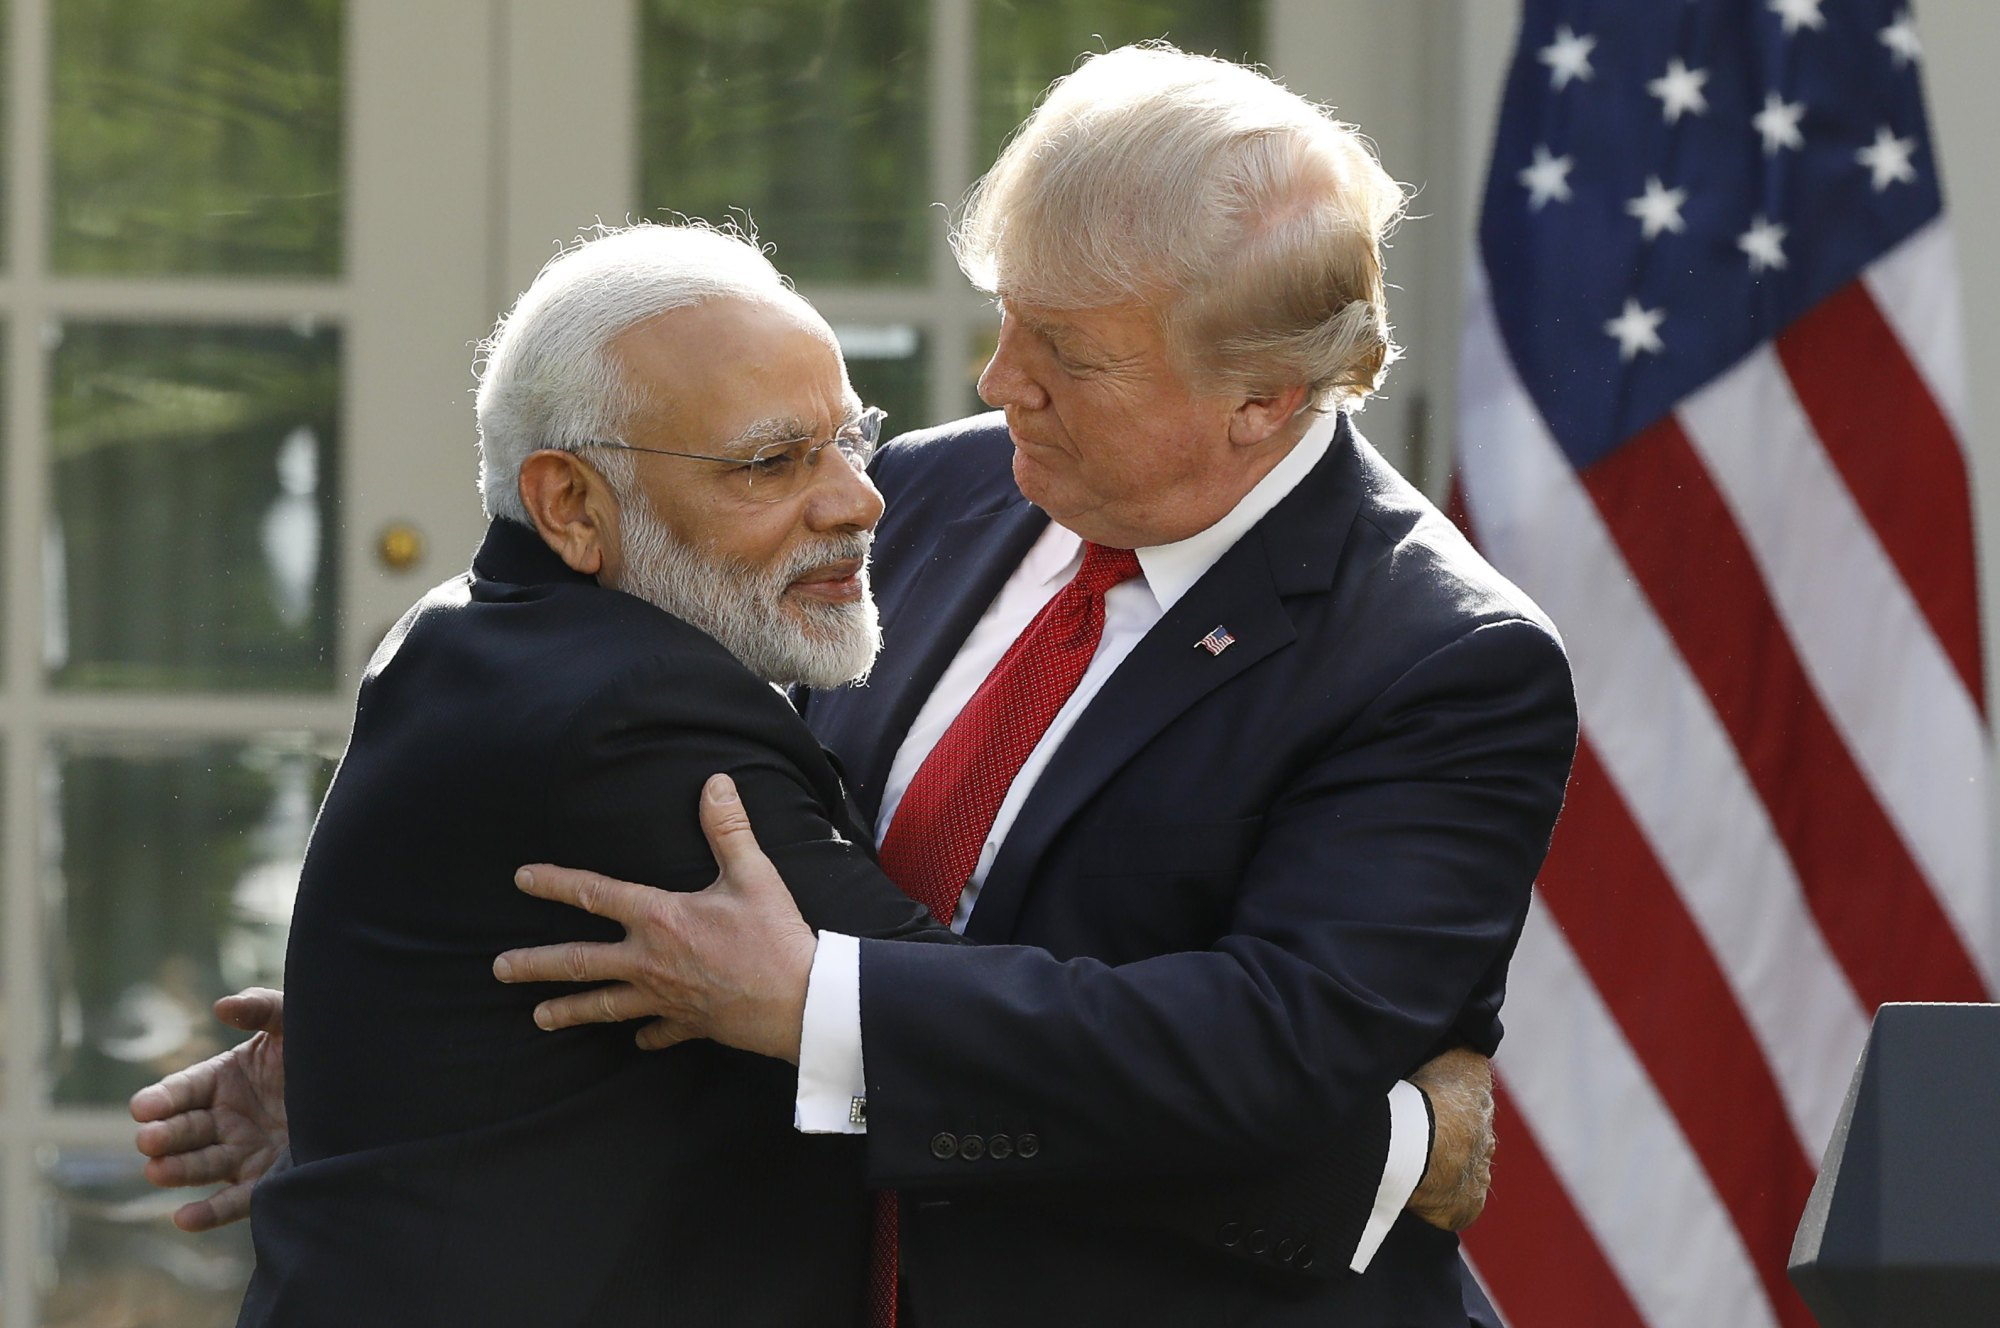 Photo of The meeting of Trump and Modi